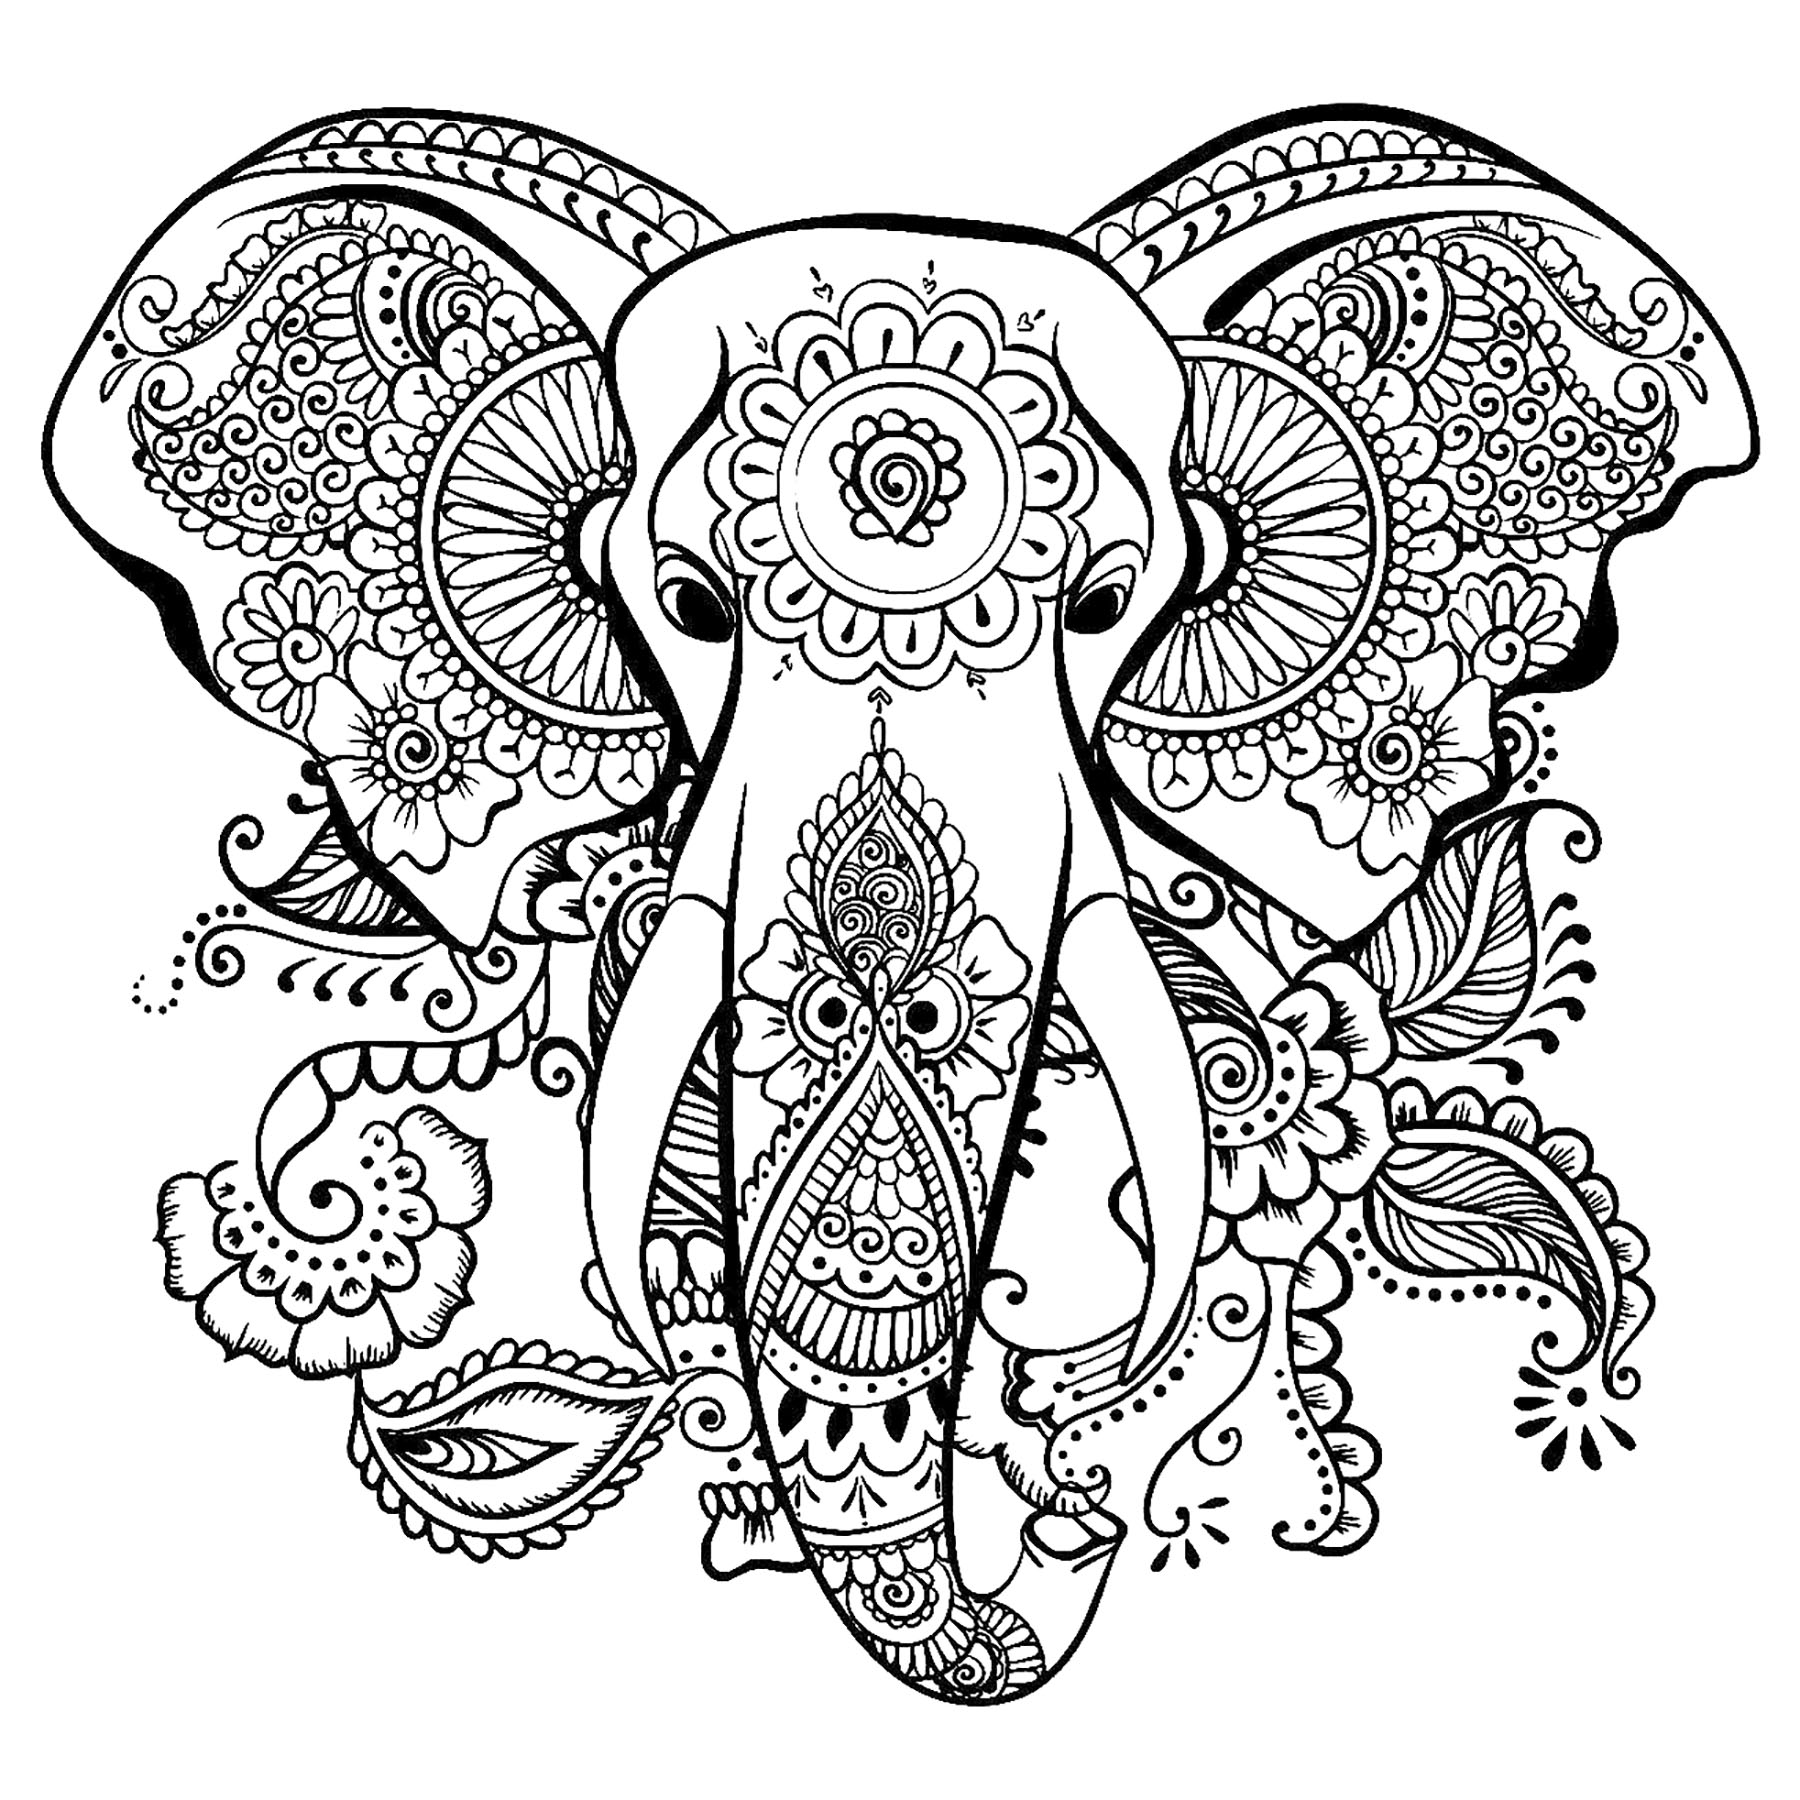 Elegant drawing of an elephant - Elephants Adult Coloring ...